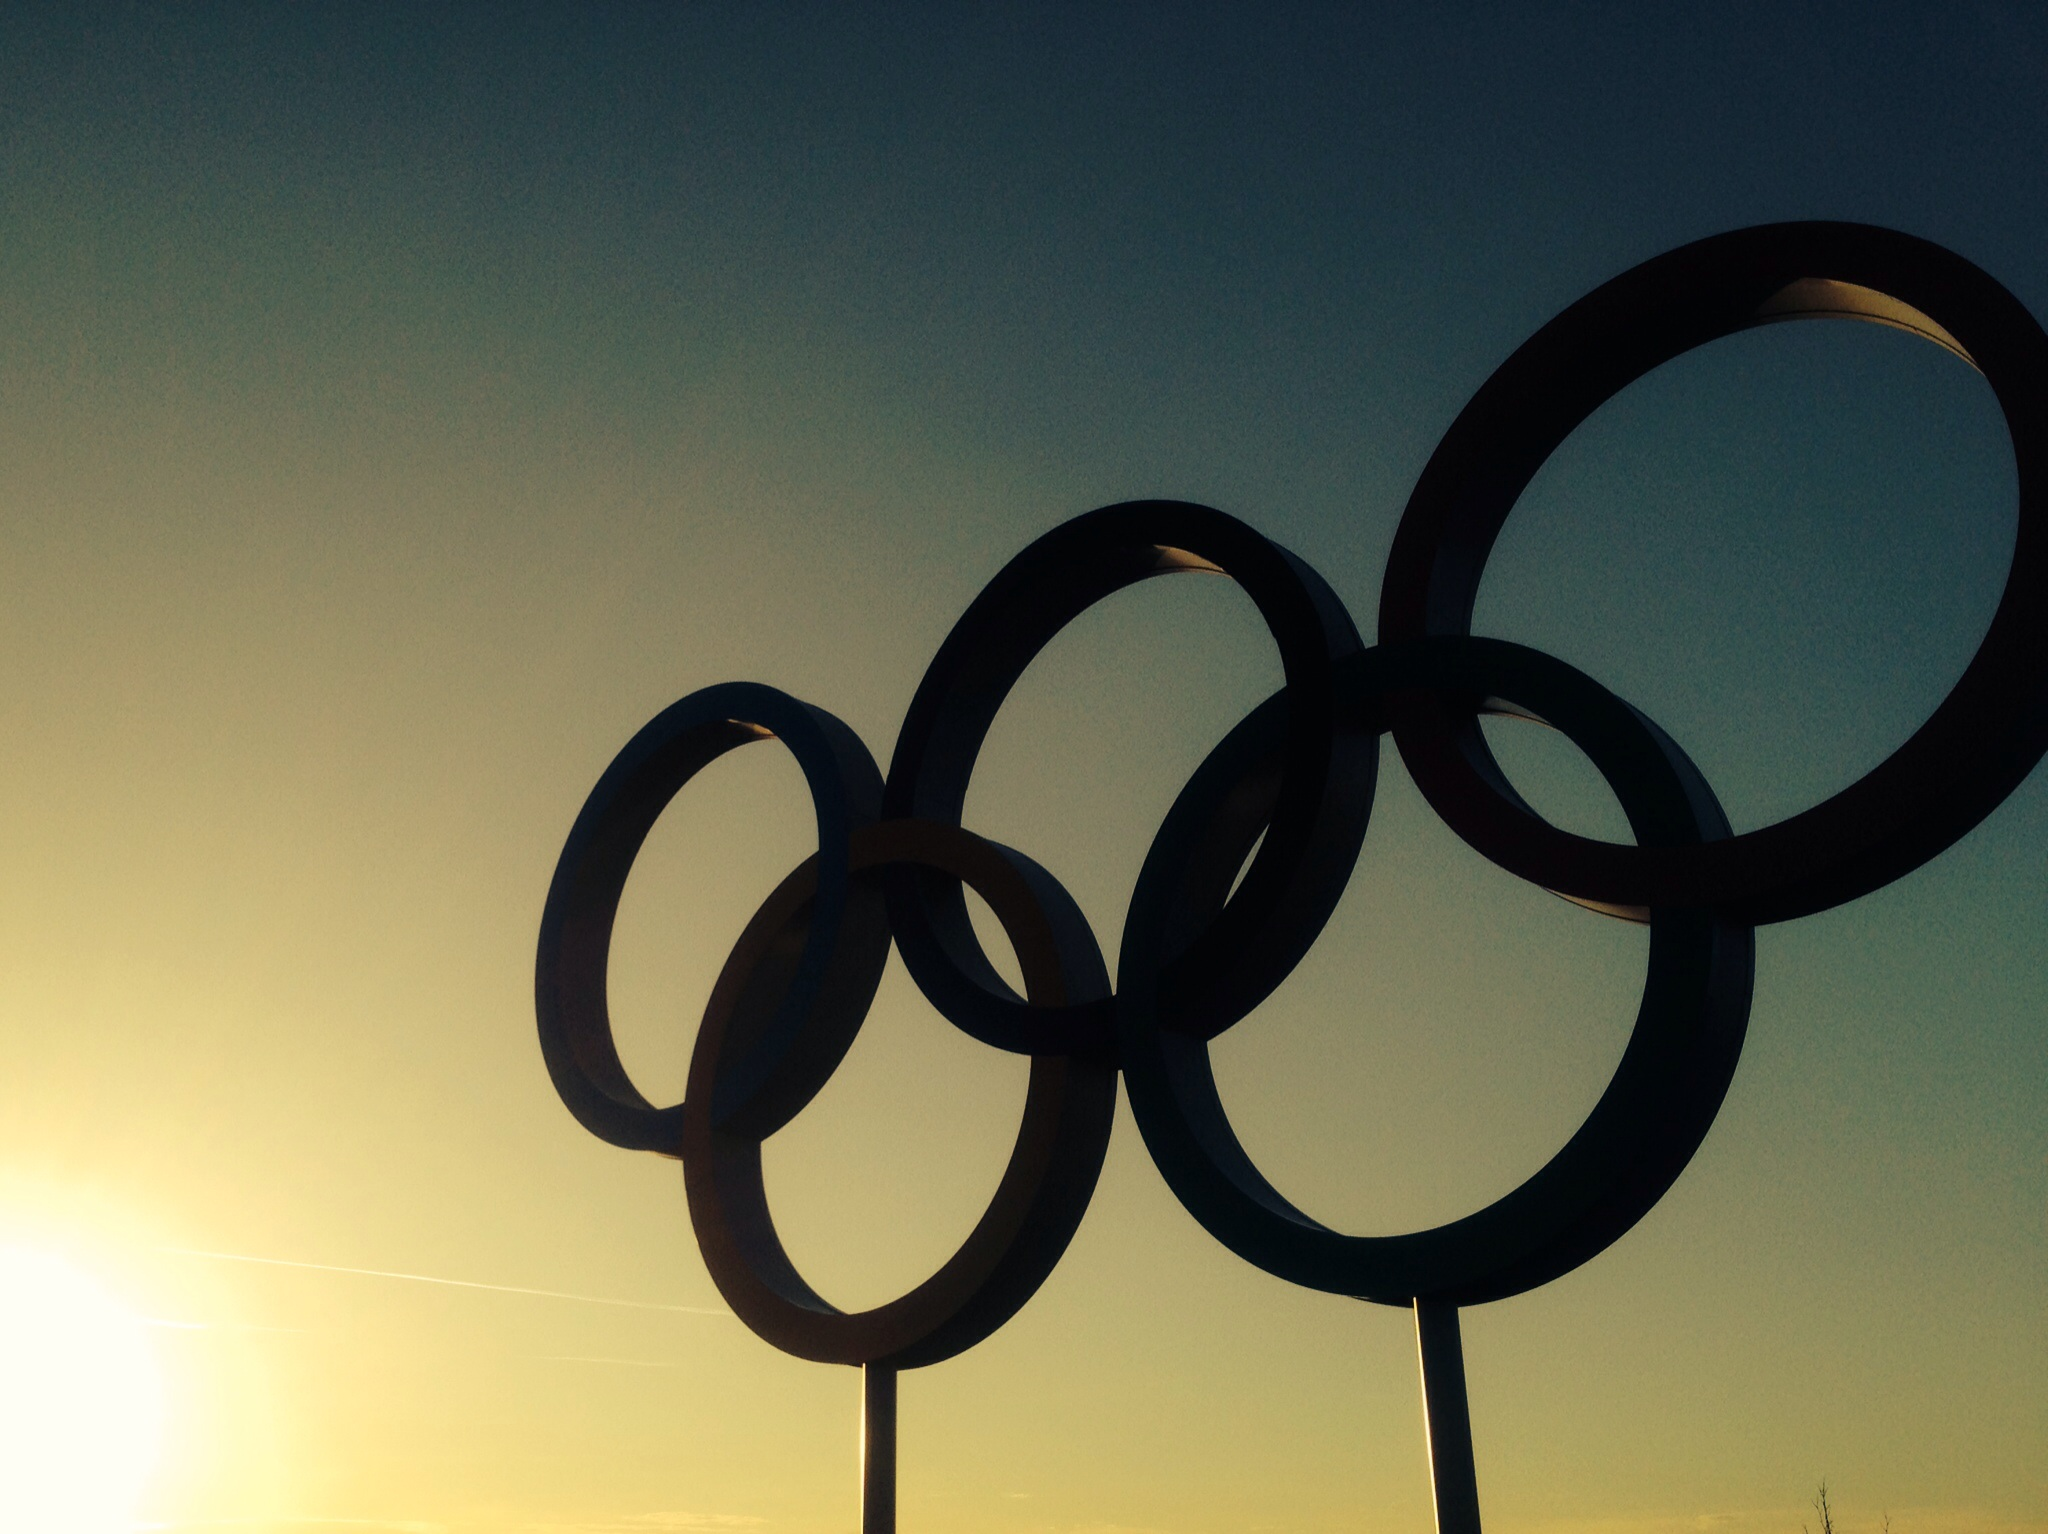 Brazil Not Prepared for Olympics, Selection Structure Must Be Reformed